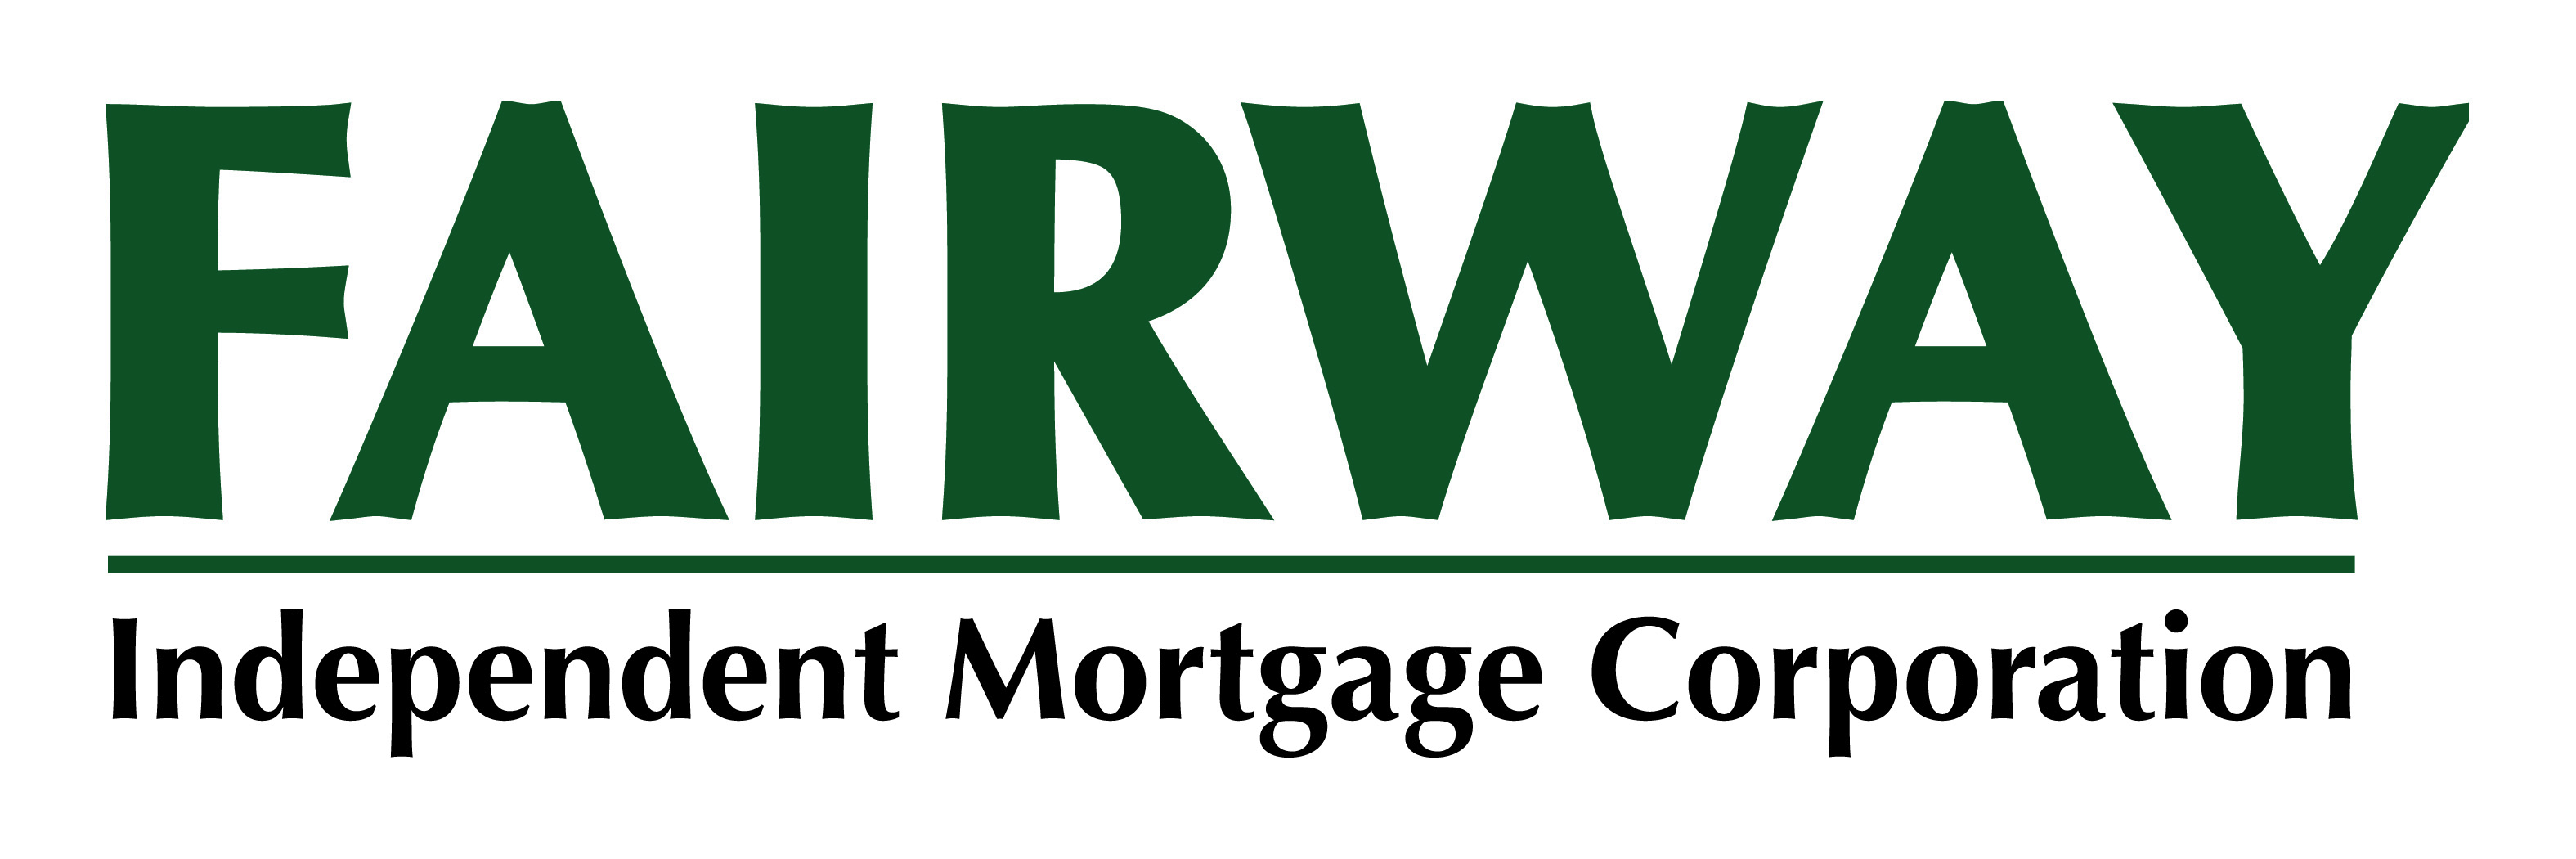 Fairway Independent Mortgage Corp. 365